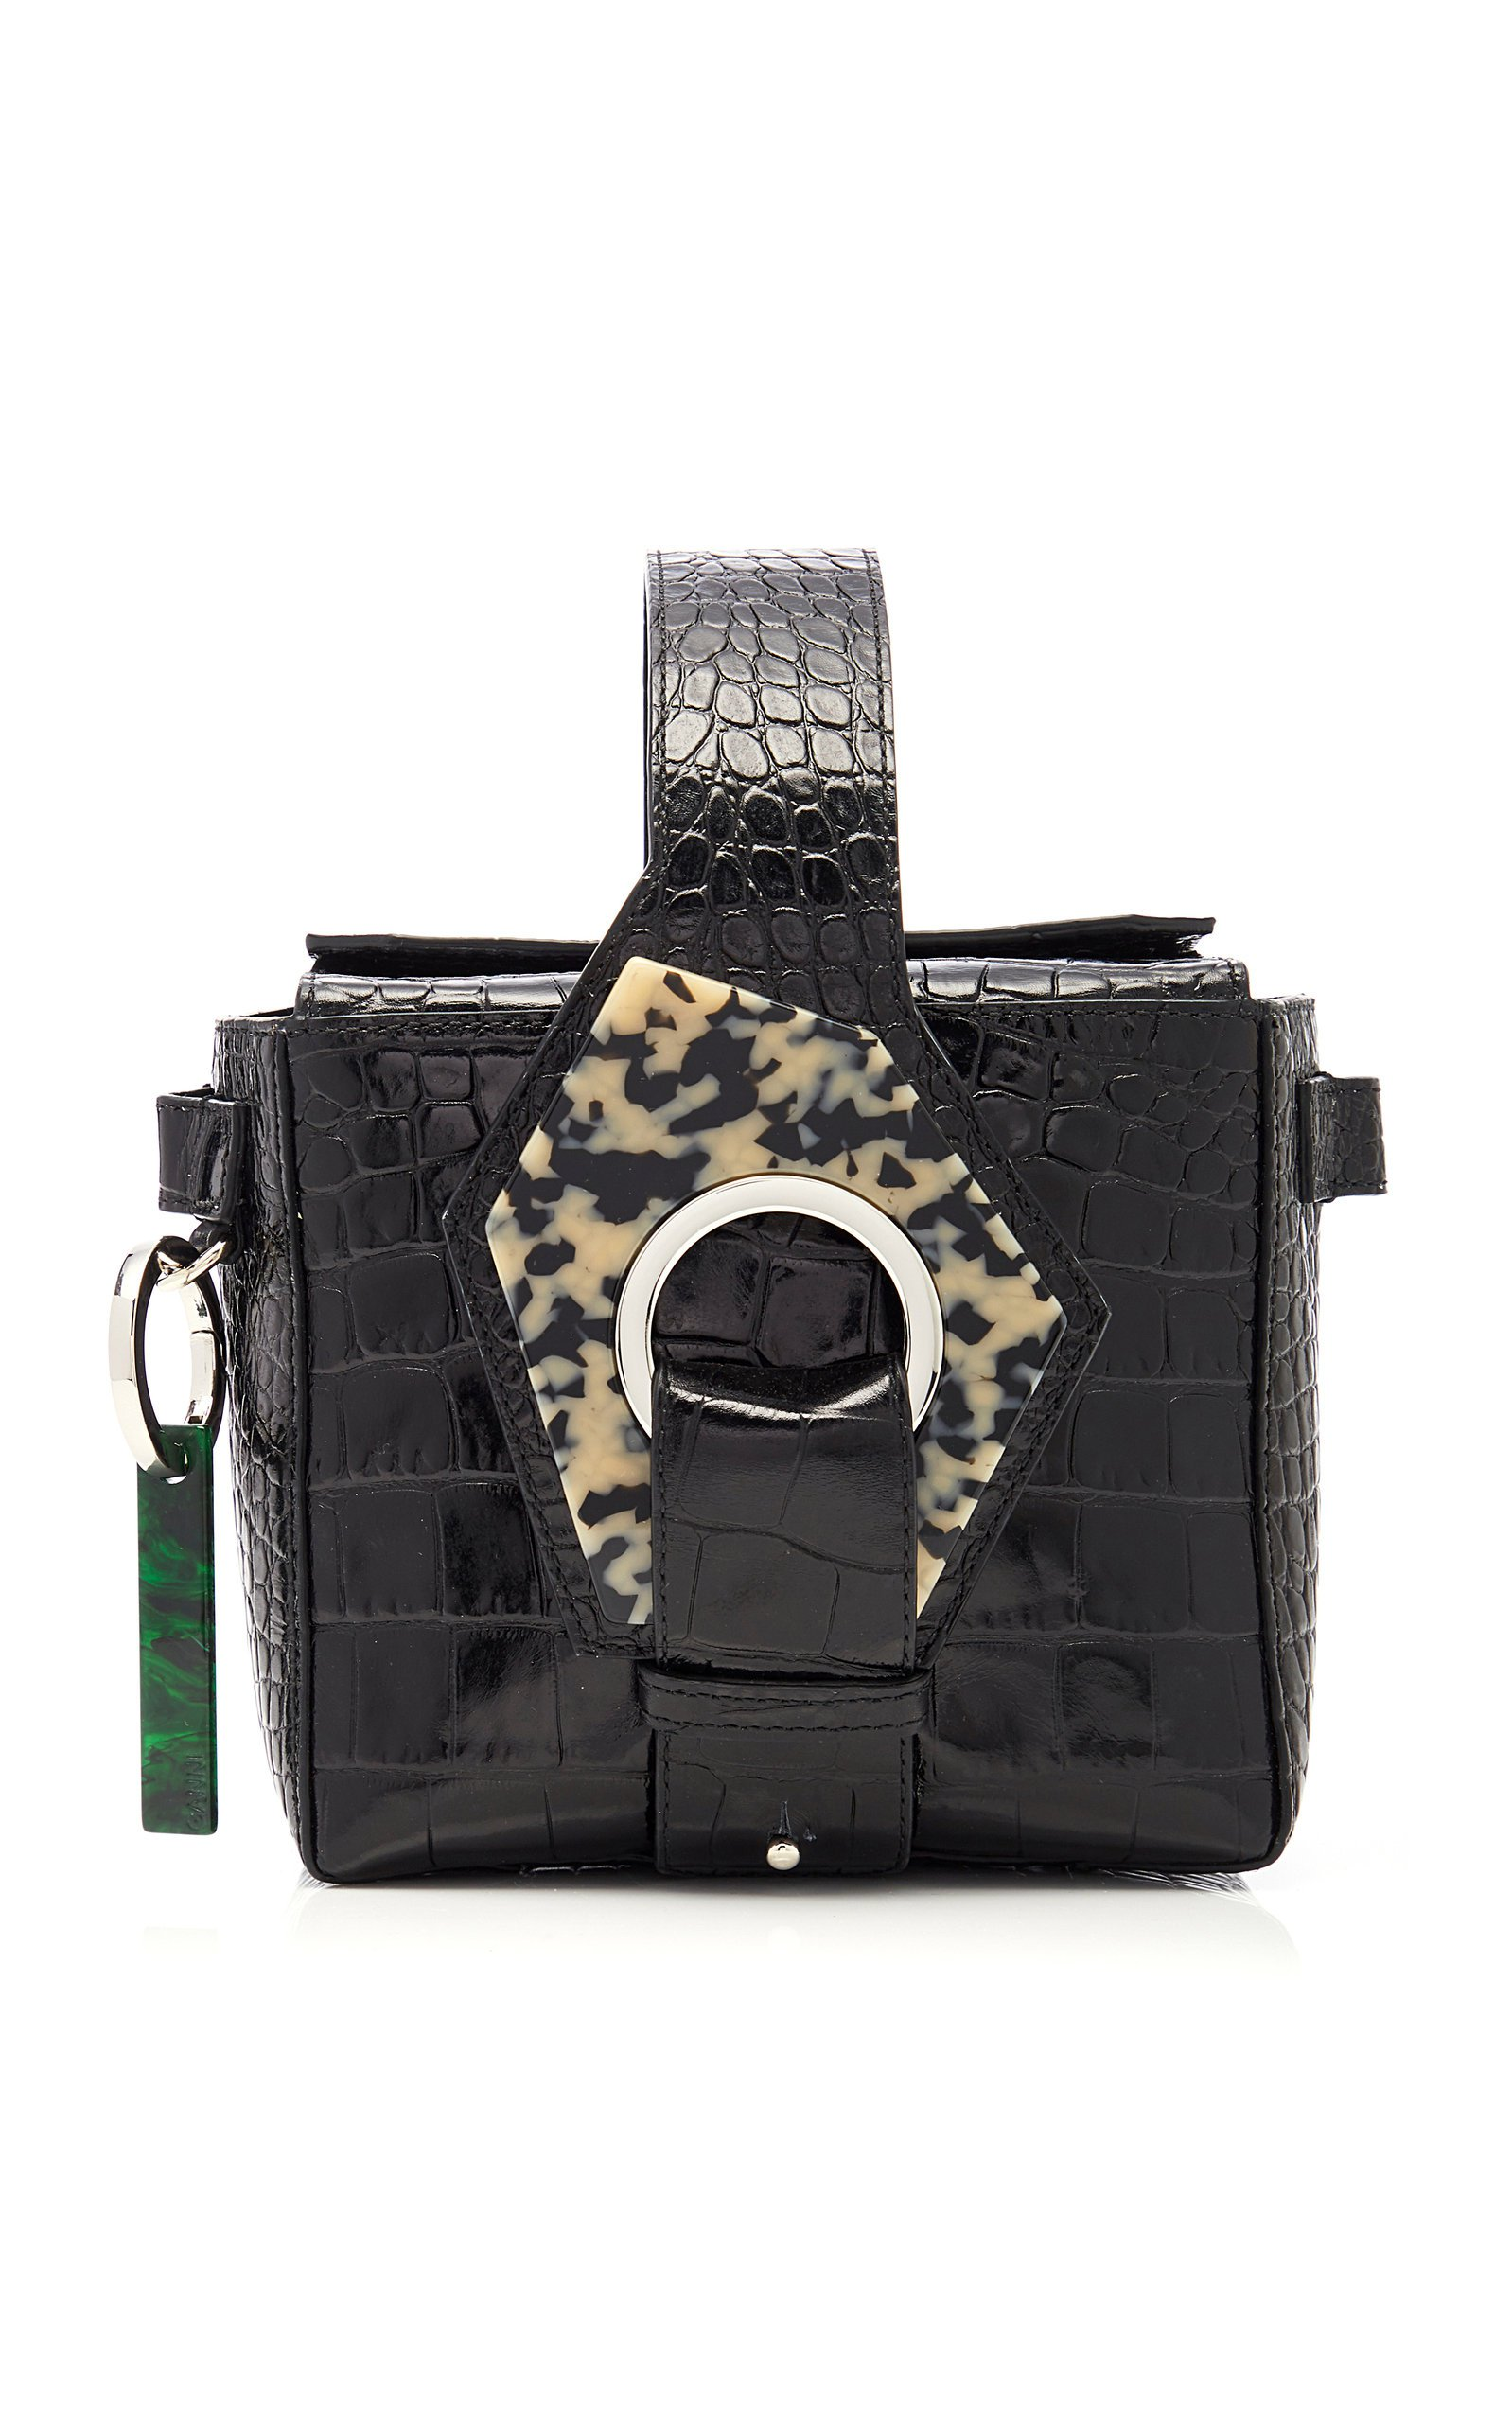 Ganni Crocodile Embossed Leather Crossbody Bag